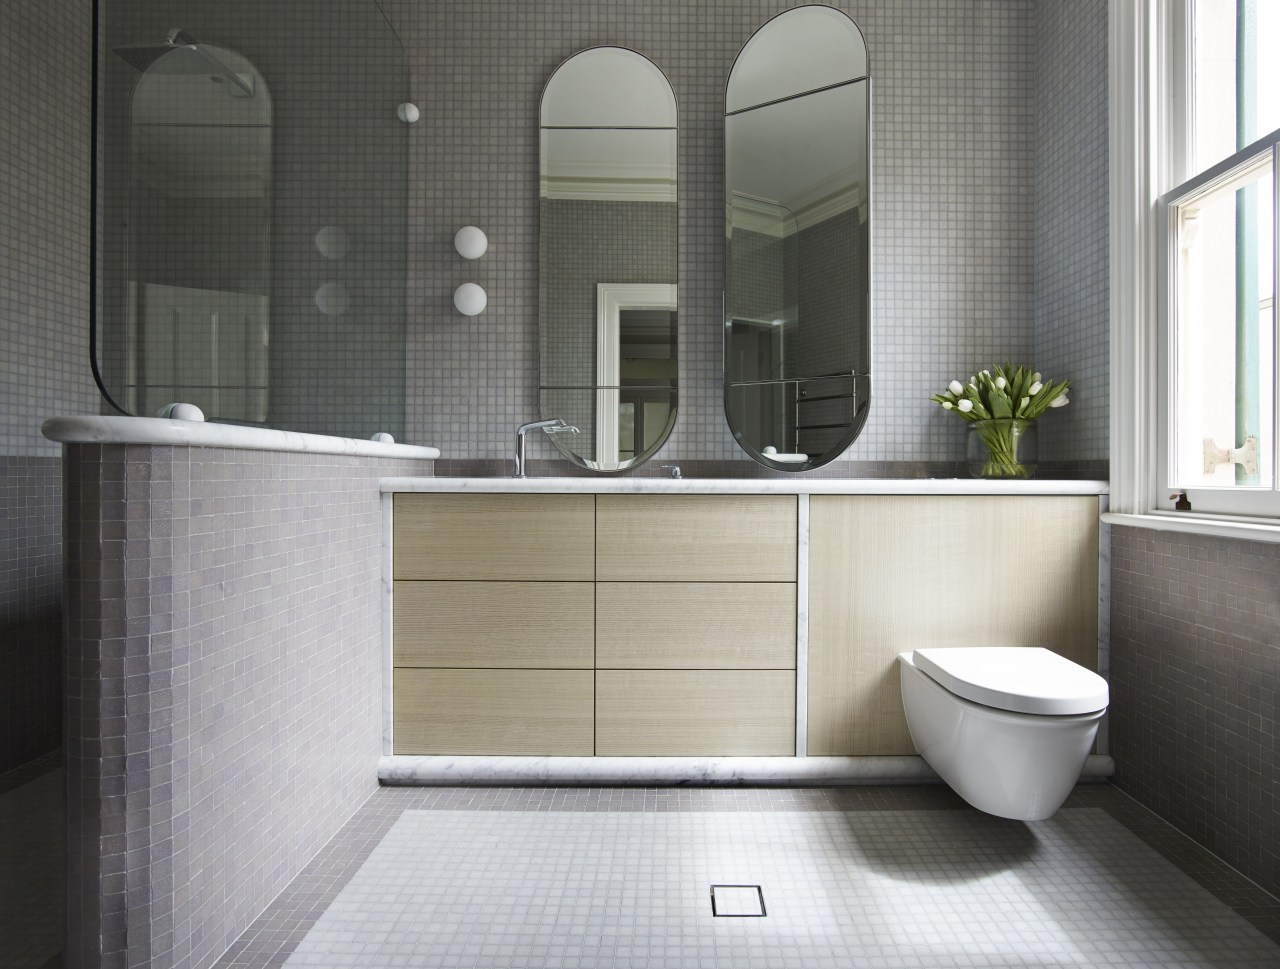 This ensuite has a near-identical aesthetic to the bathroom, bathroom accessory, floor, interior design, plumbing fixture, product design, room, sink, tile, gray